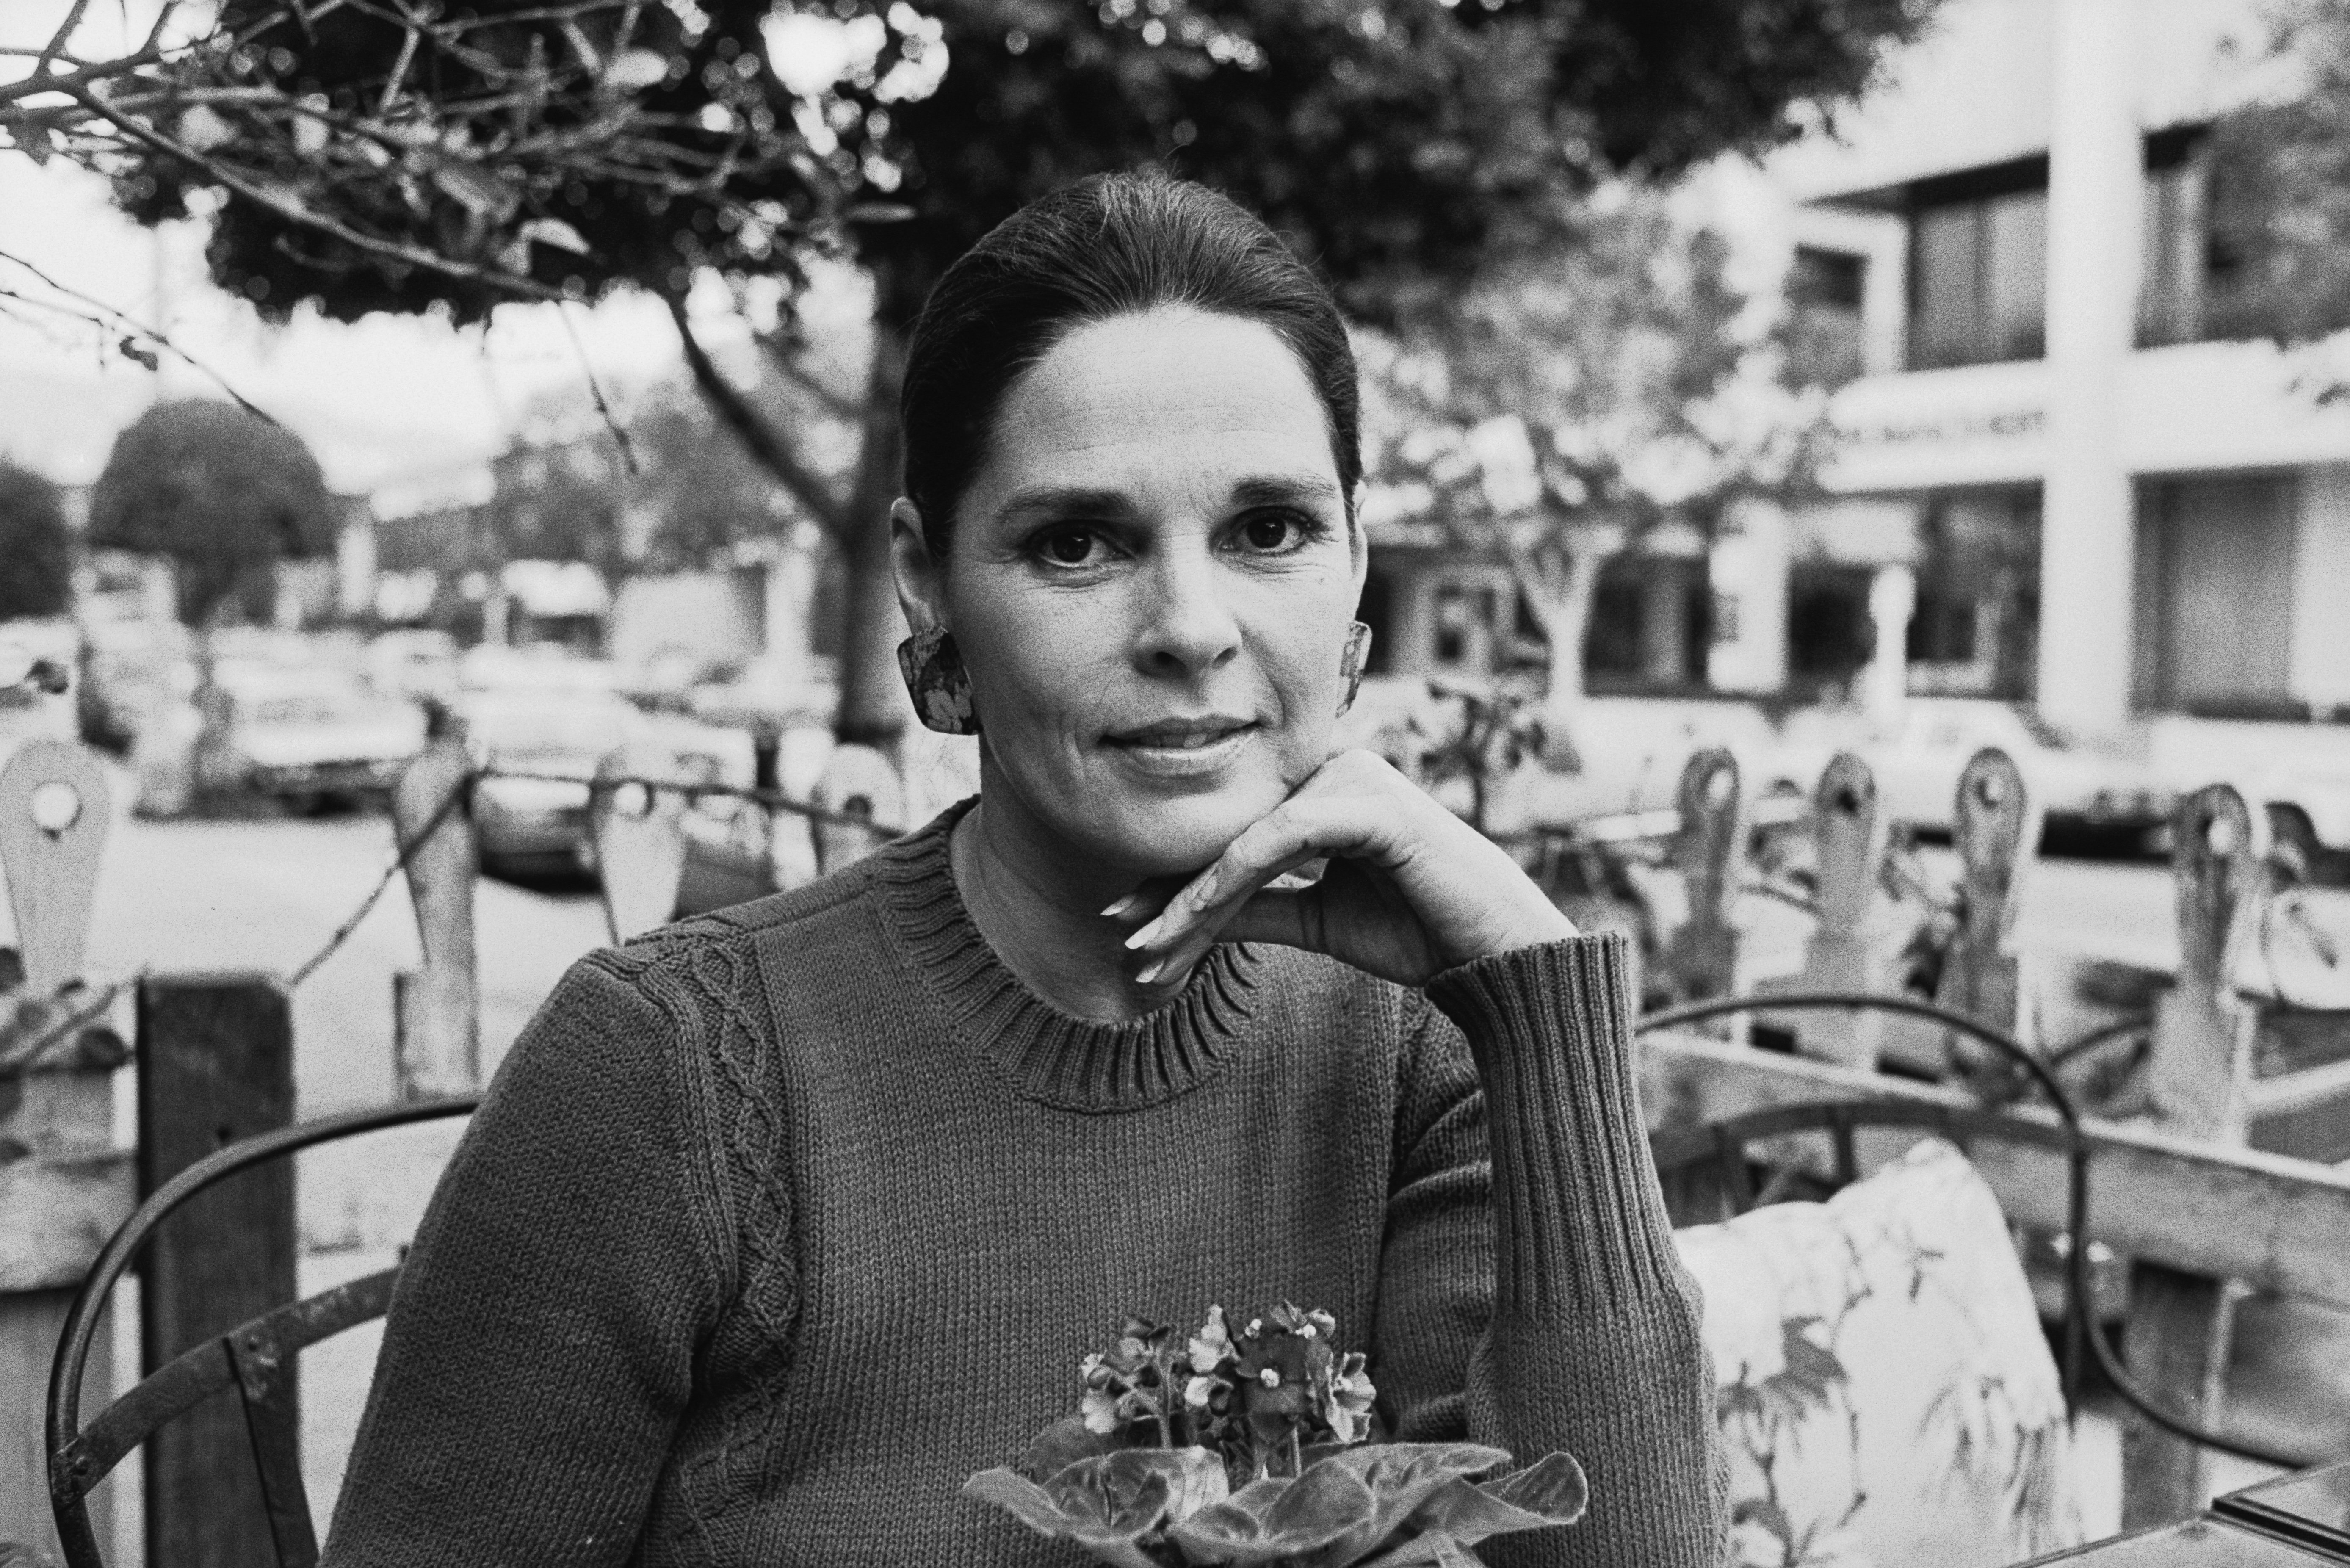 Actress Ali MacGraw, wearing a knitted jumper, as she supports her chin on her hand, 6th February 1985.| Source: Getty Images